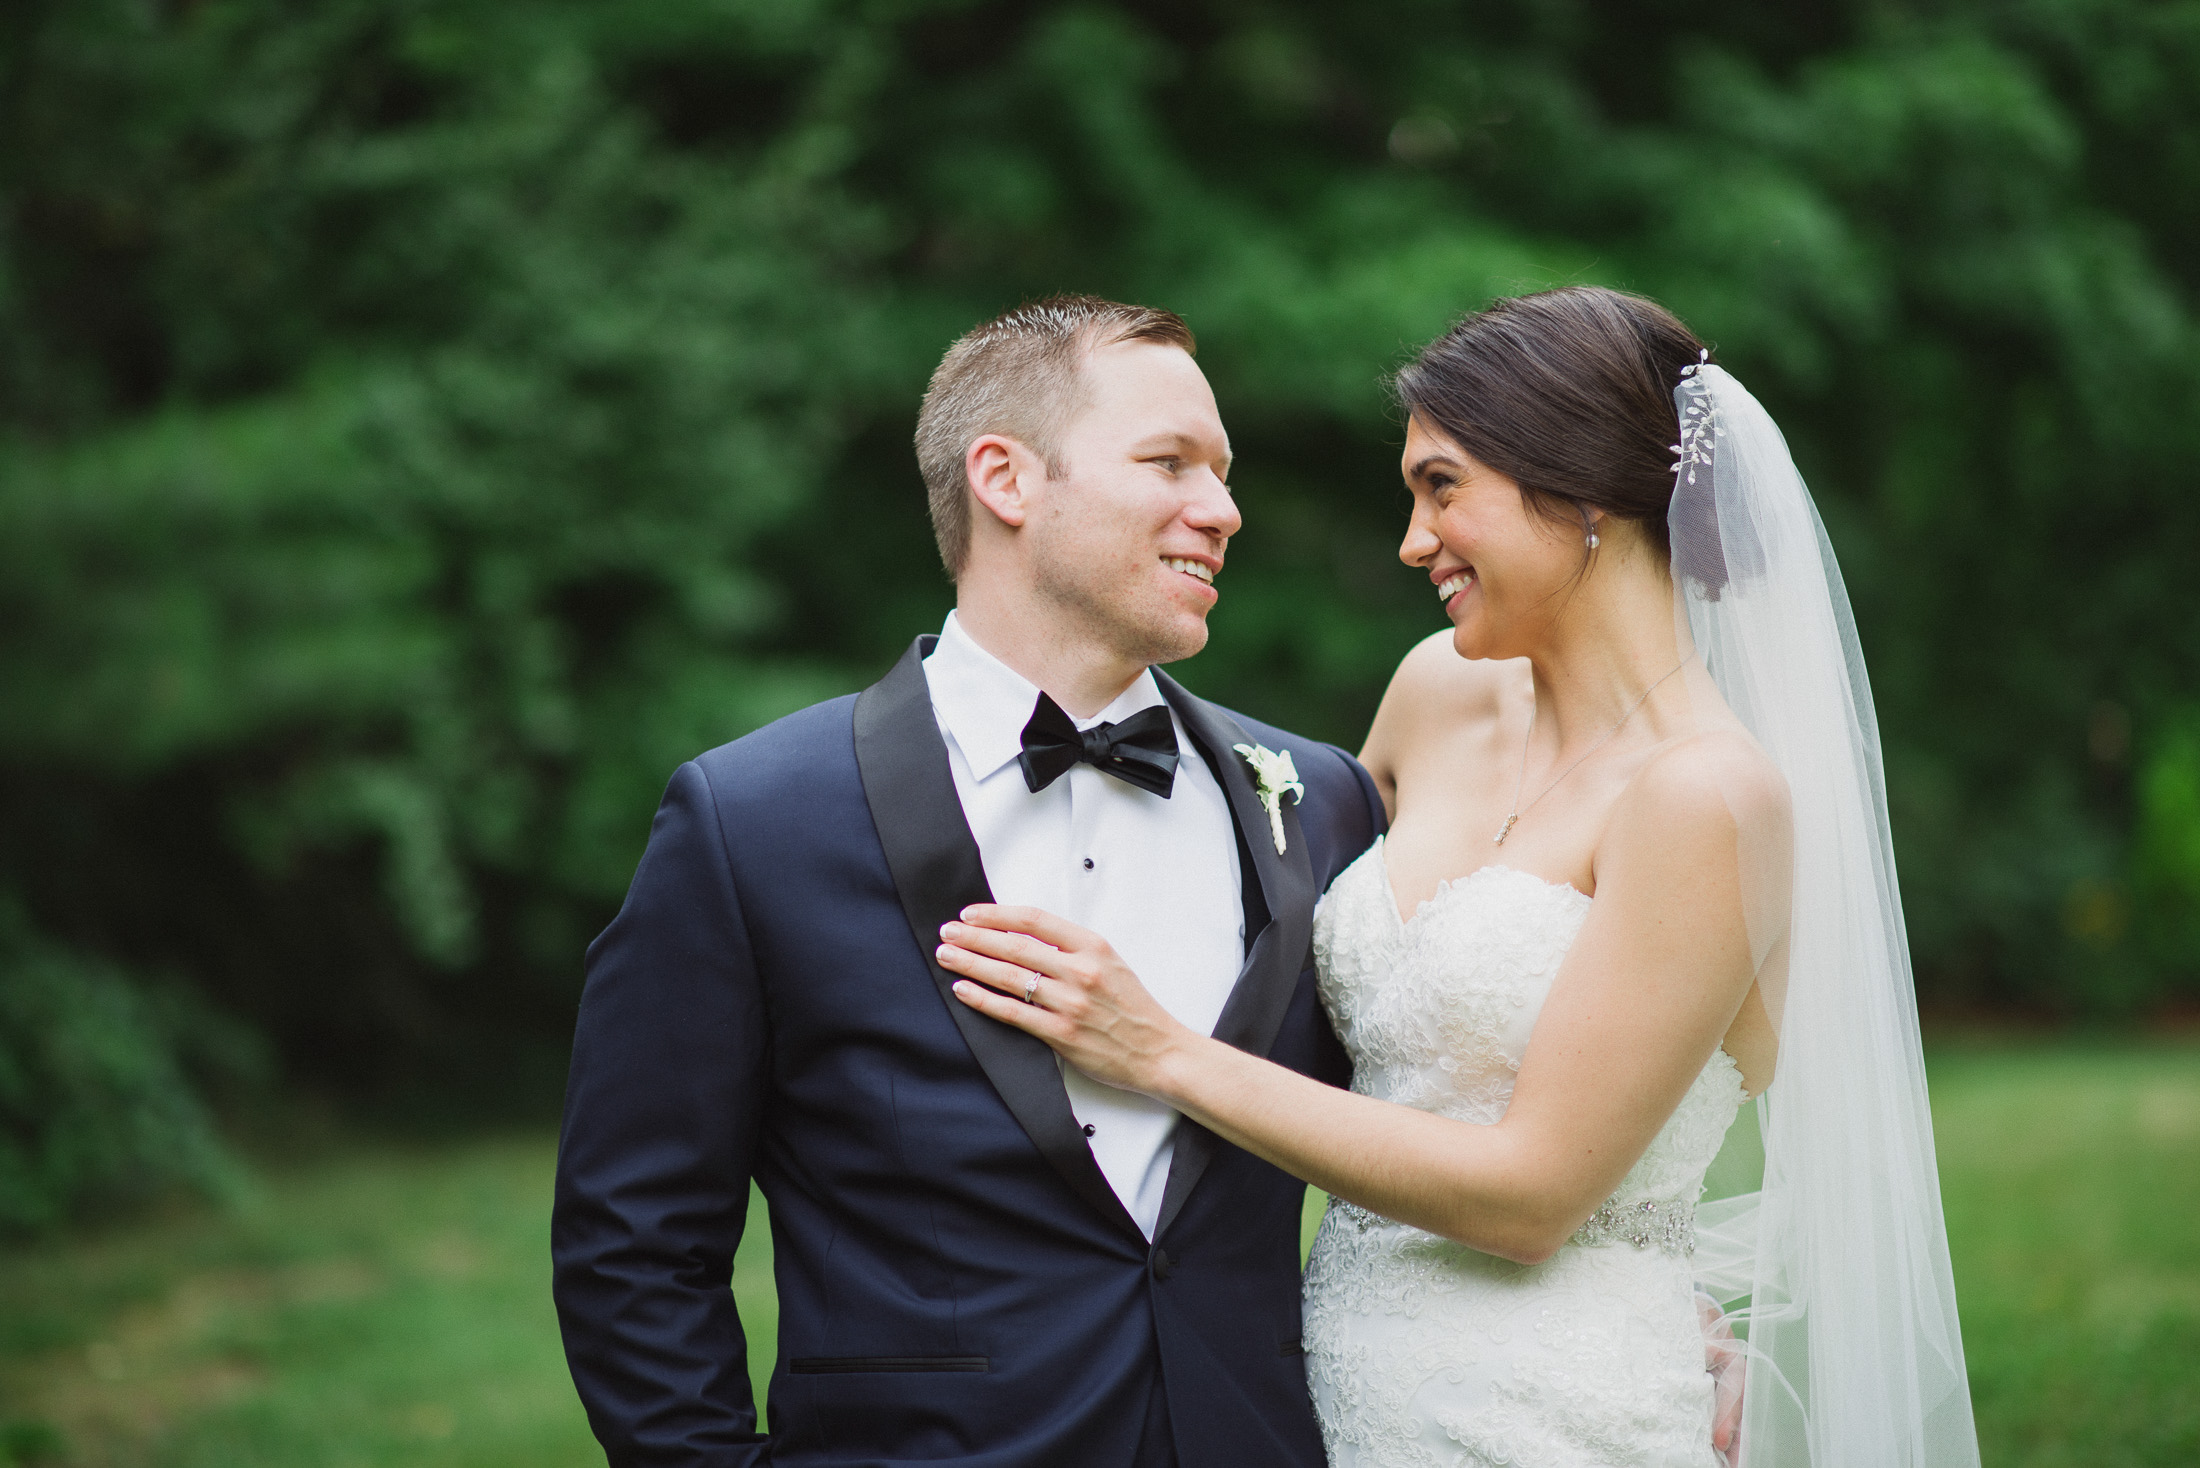 NH Wedding Photography: bride and groom looking at each other